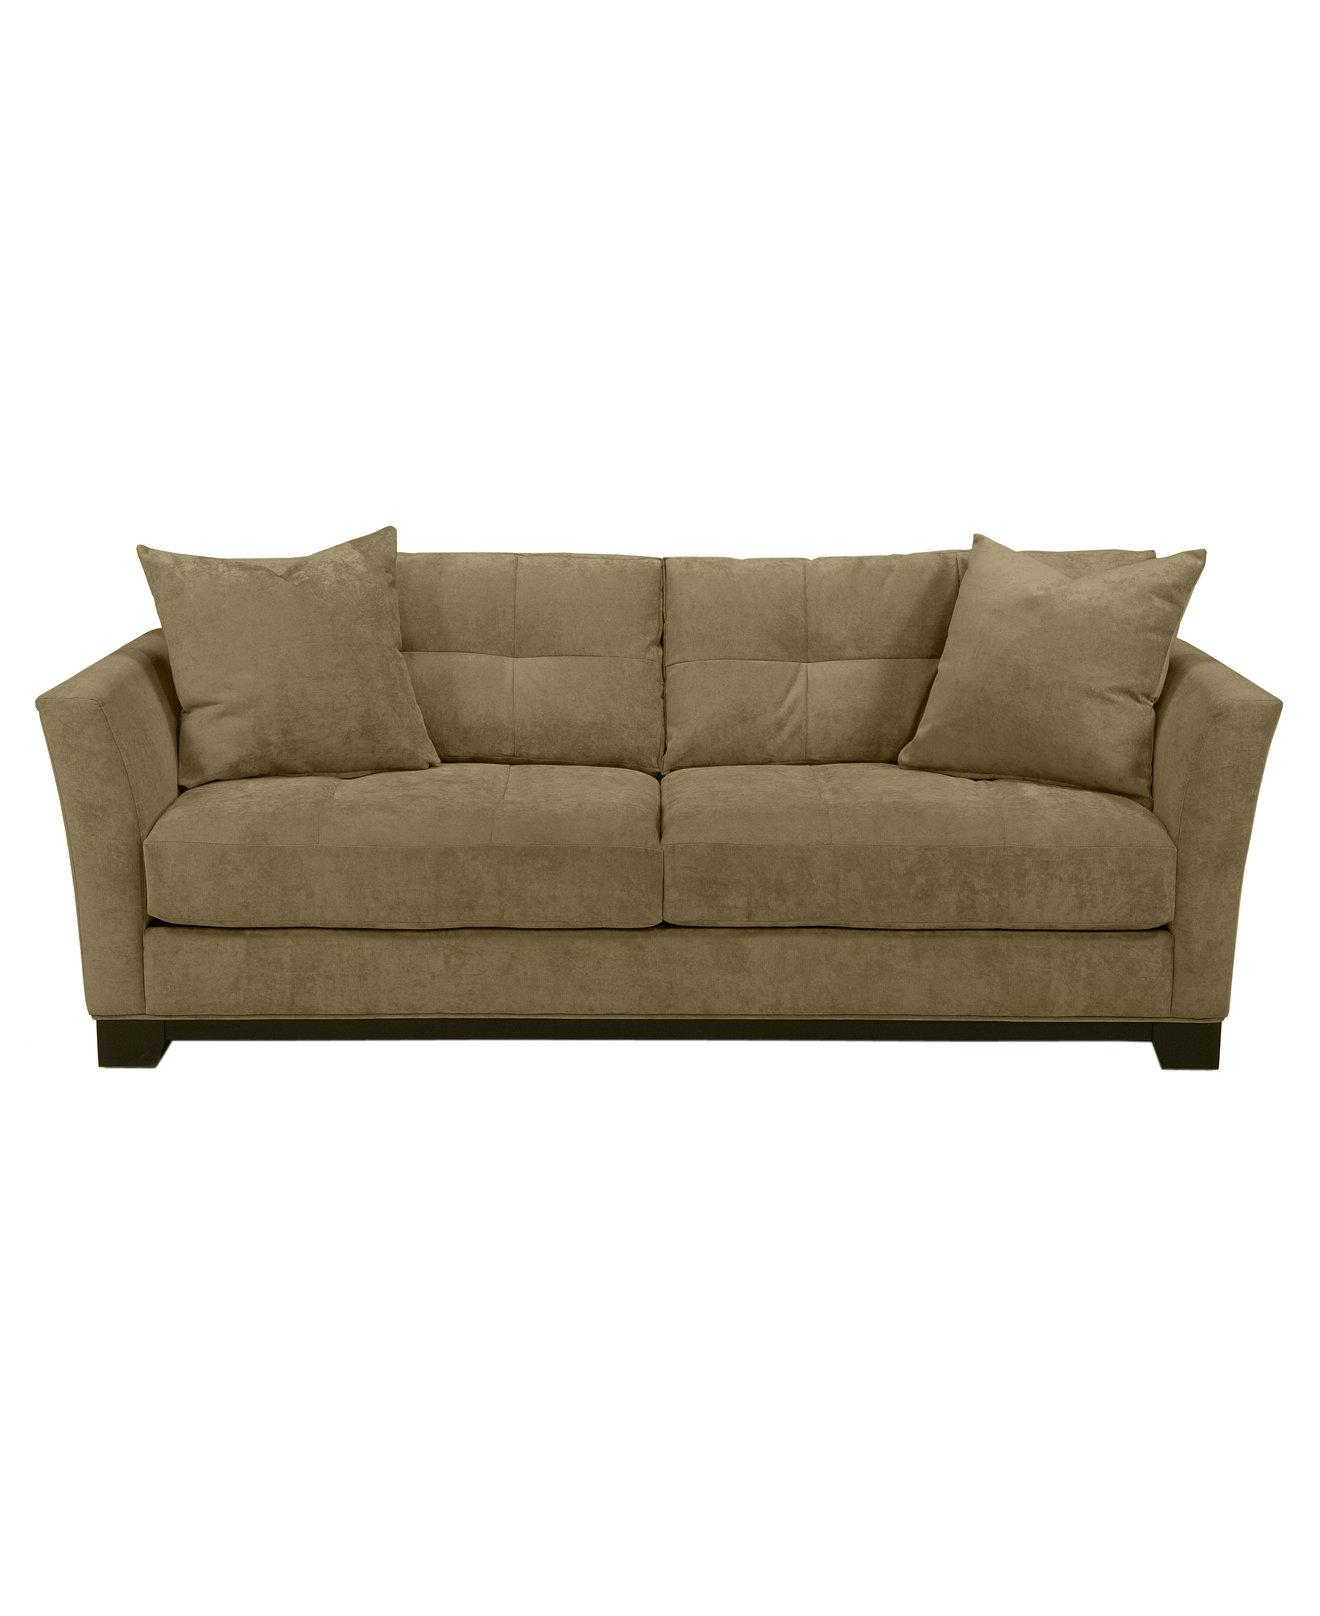 cindy crawford denim sofa sleeper sectional sofas with a chaise lounge 20 collection of ideas